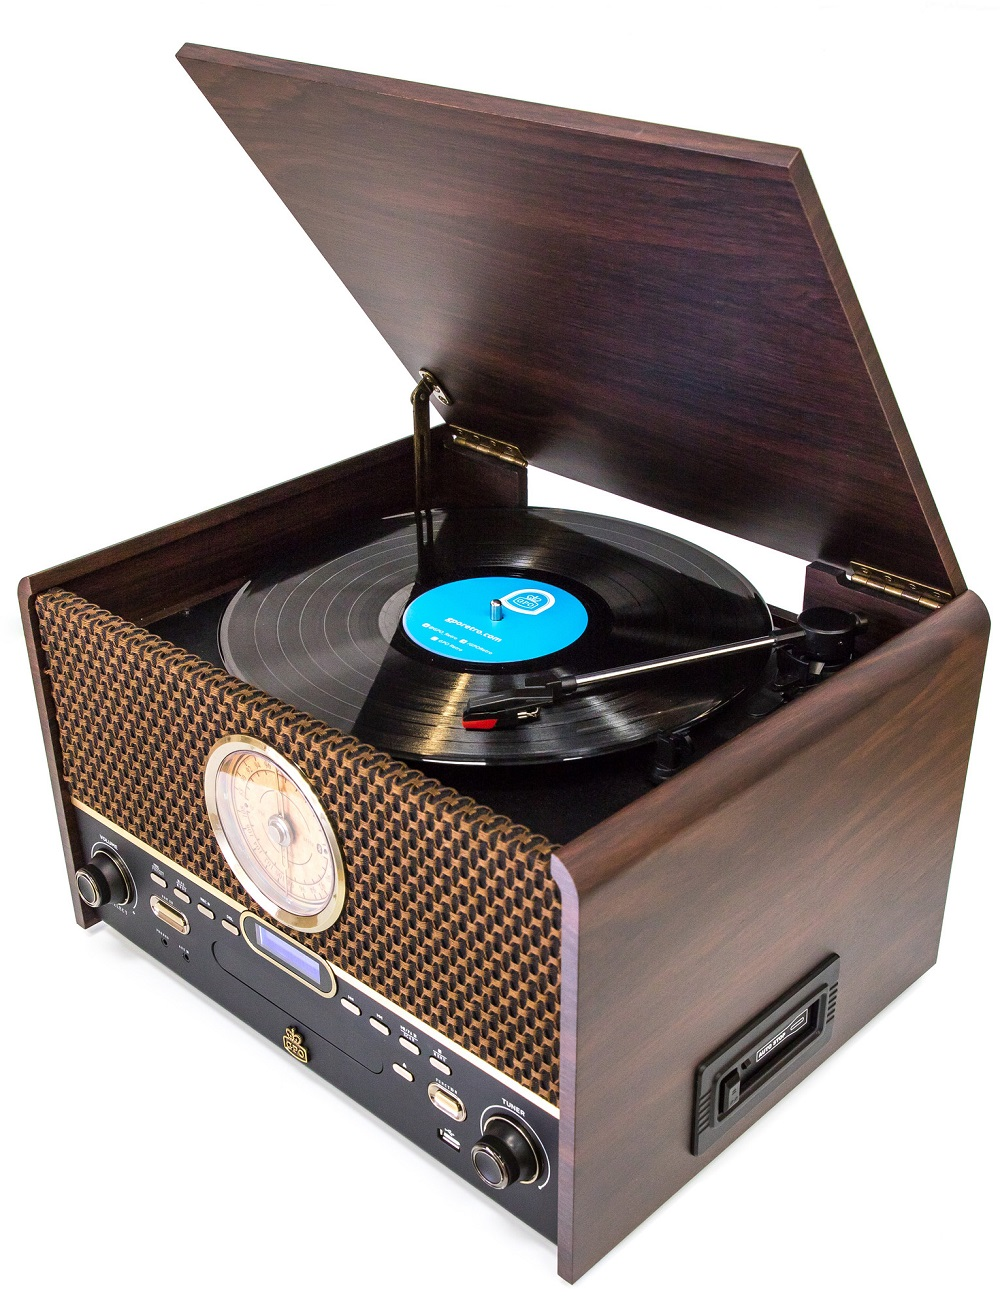 Details About Gpo Chesterton Dab 7 In 1 Music Centre Record Player Bluetooth Cd Usb Cassette